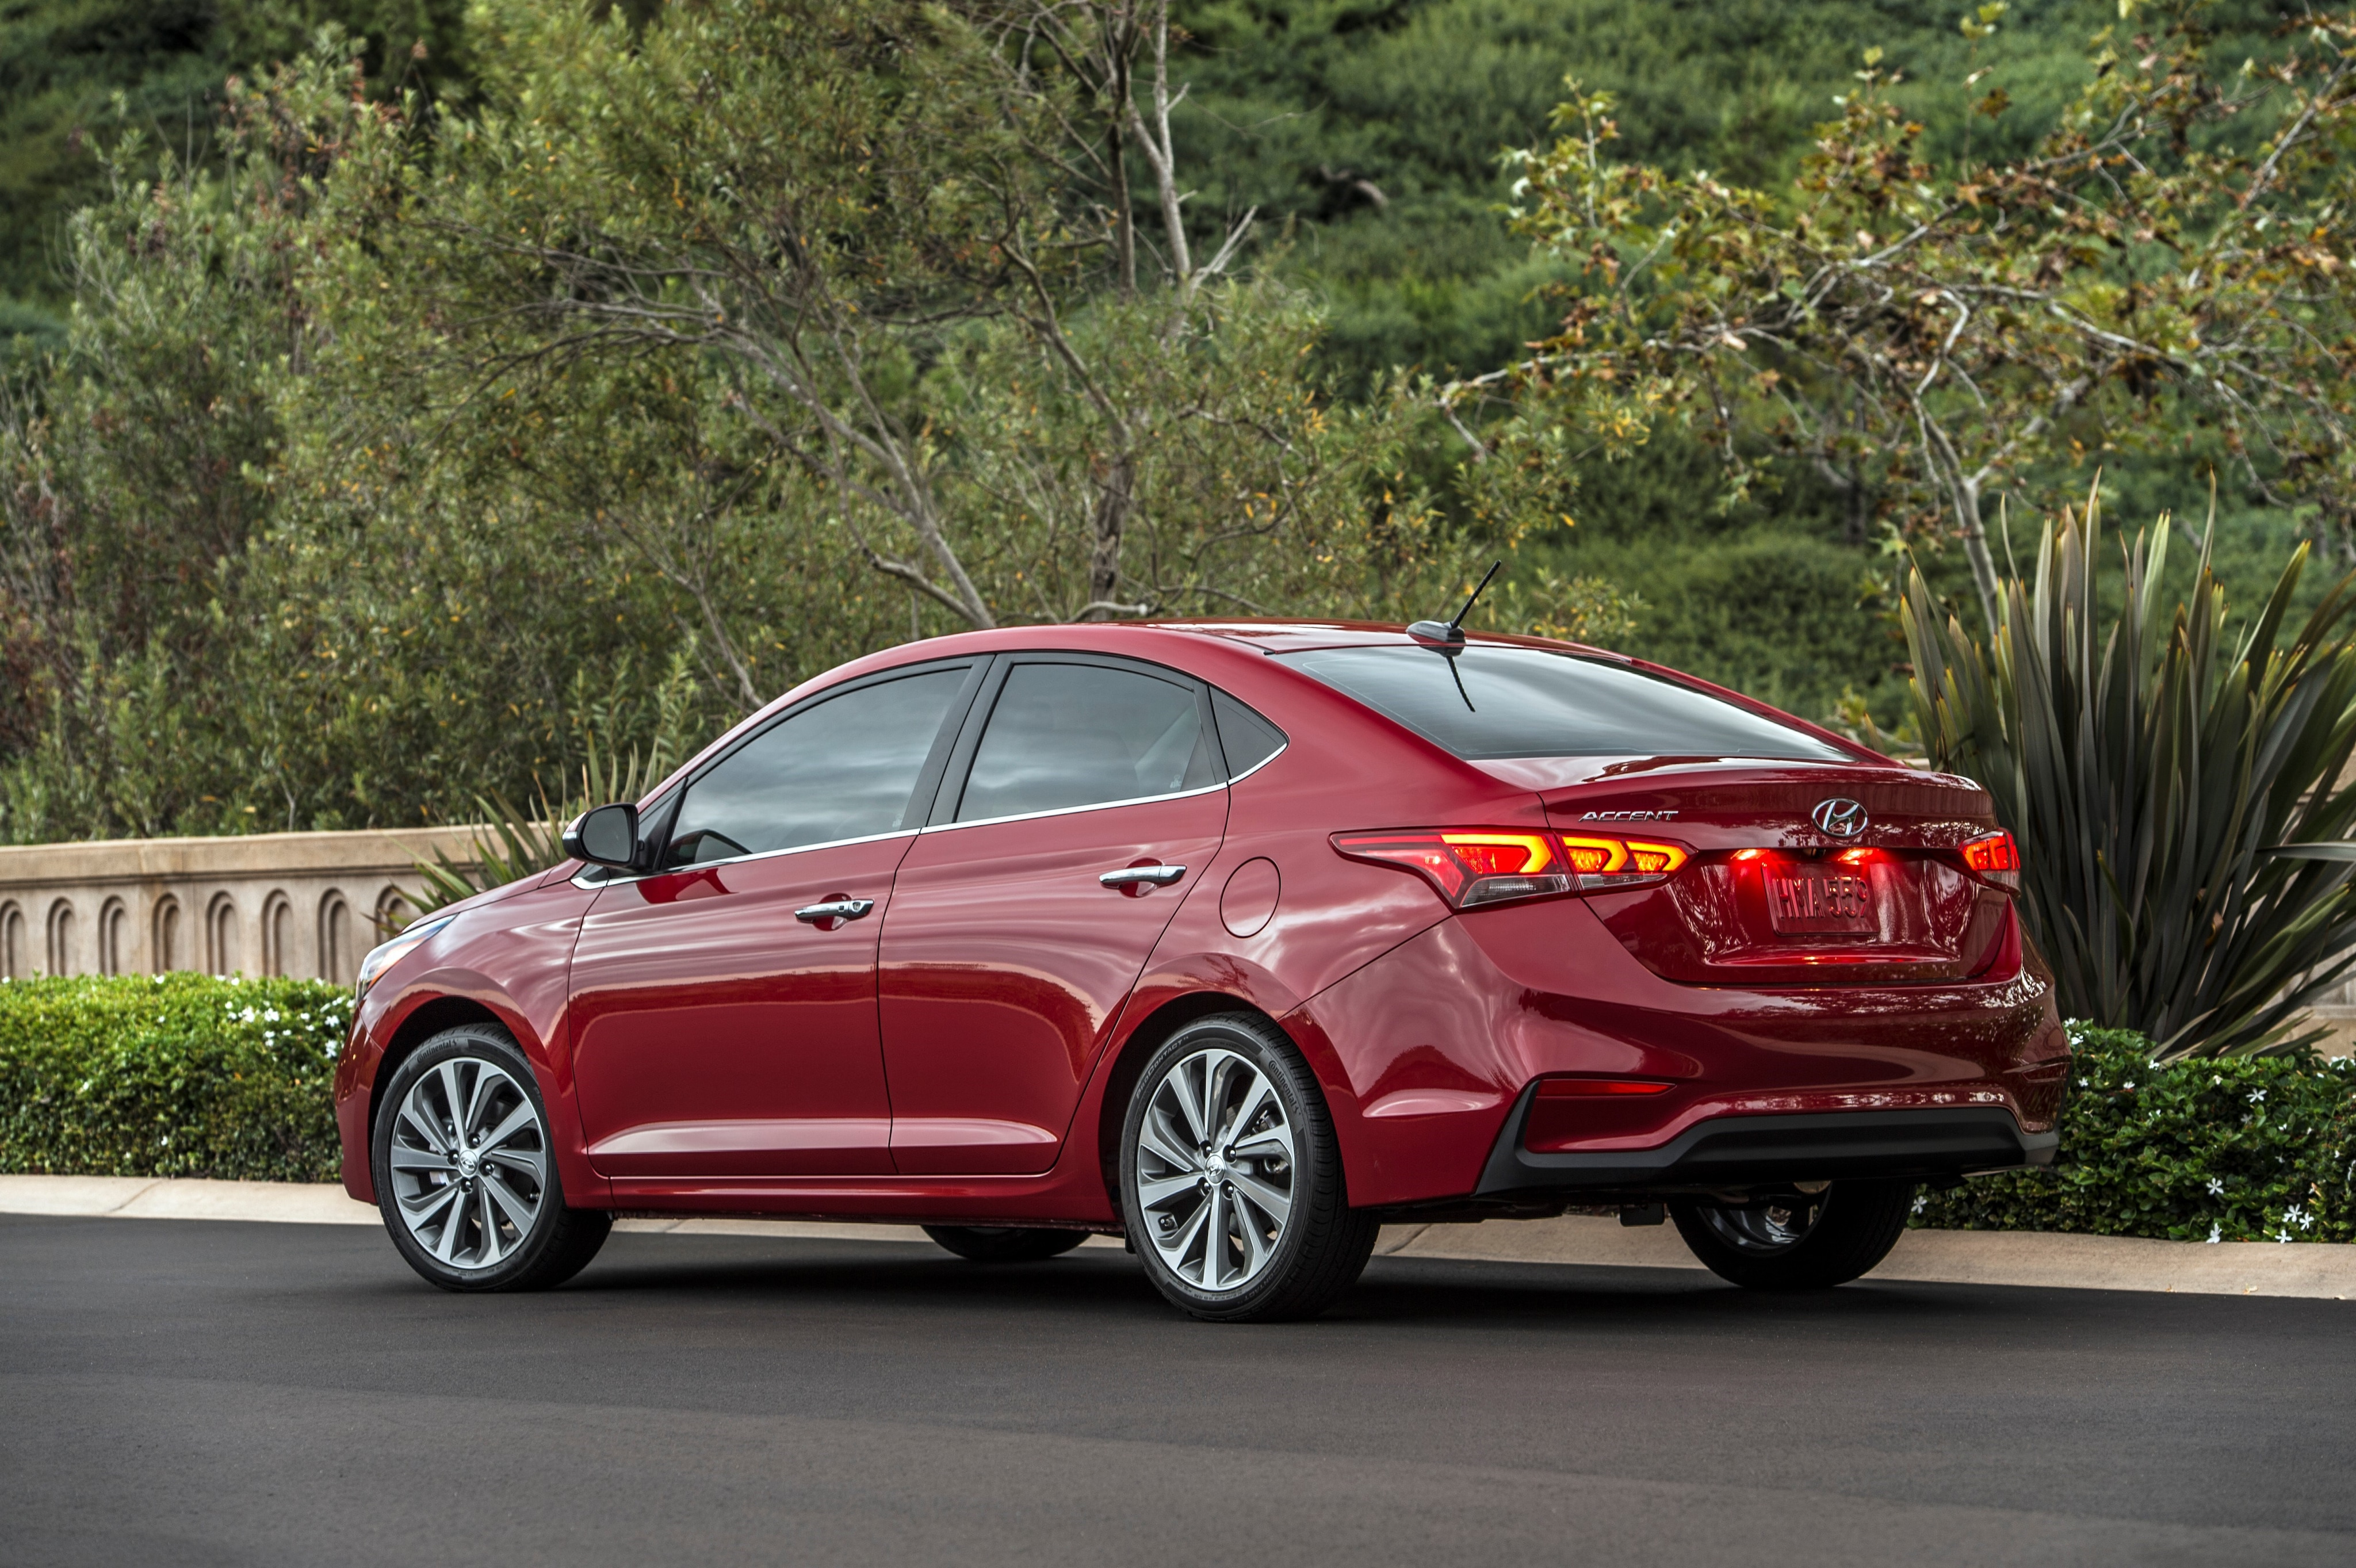 2018 Hyundai Accent For Sale Near Cherry Hill